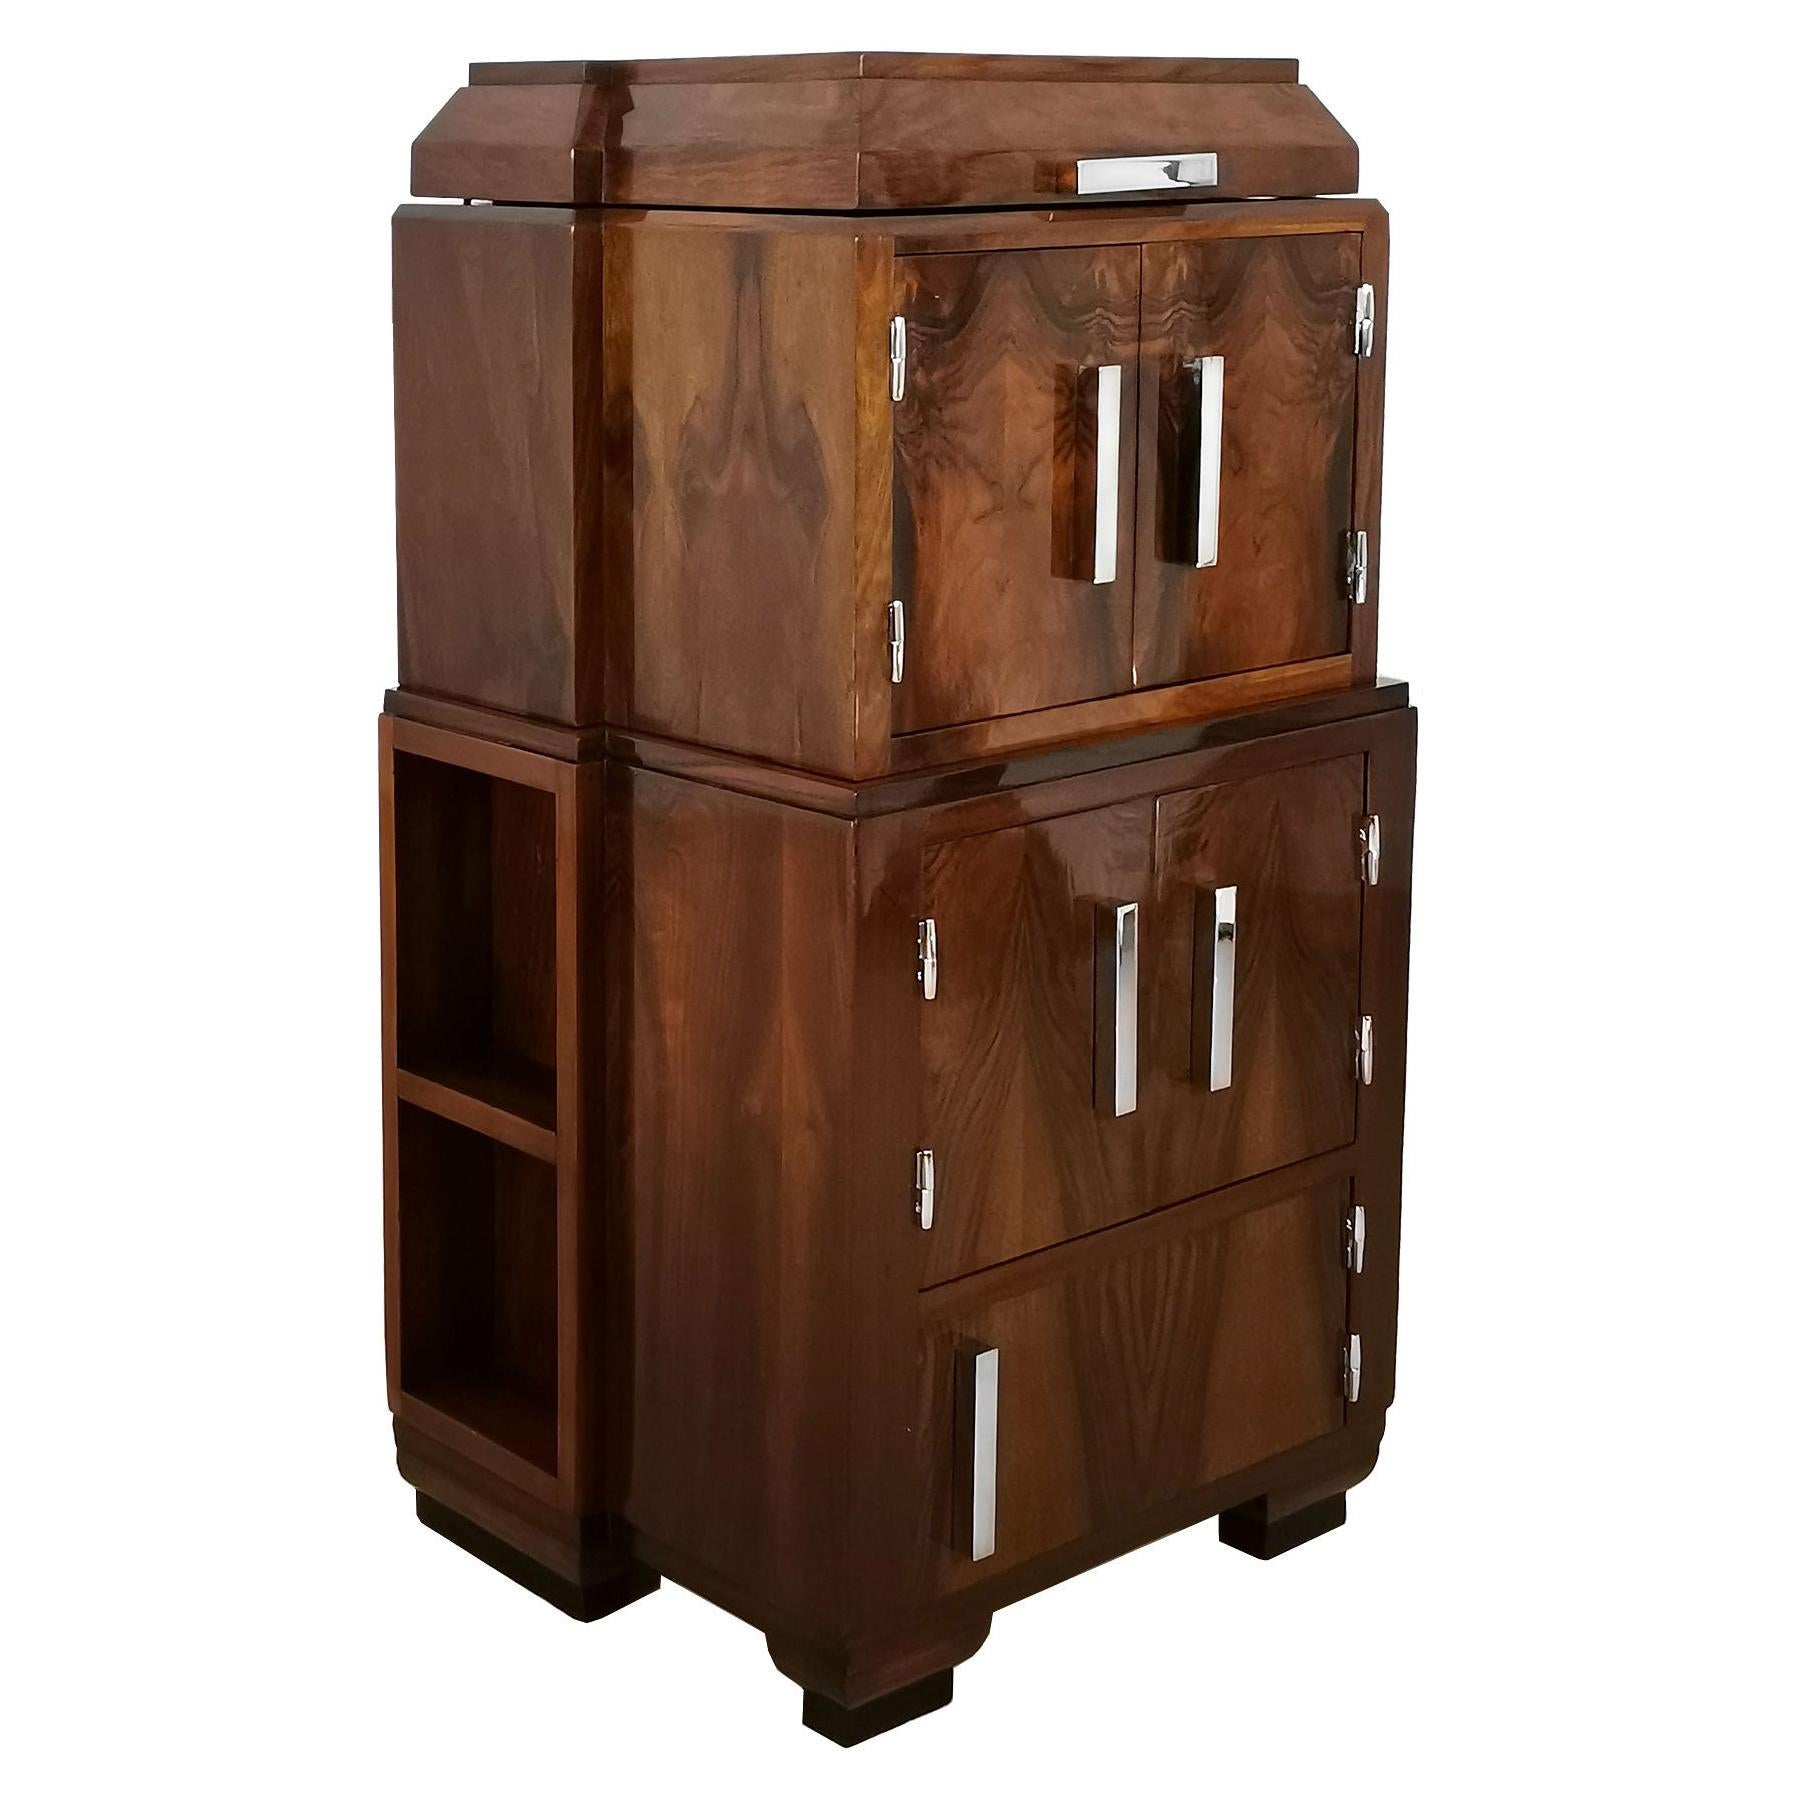 1930´s Art Deco Radio Cabinet Converted into a Bar or Auxiliary Cabinet, France